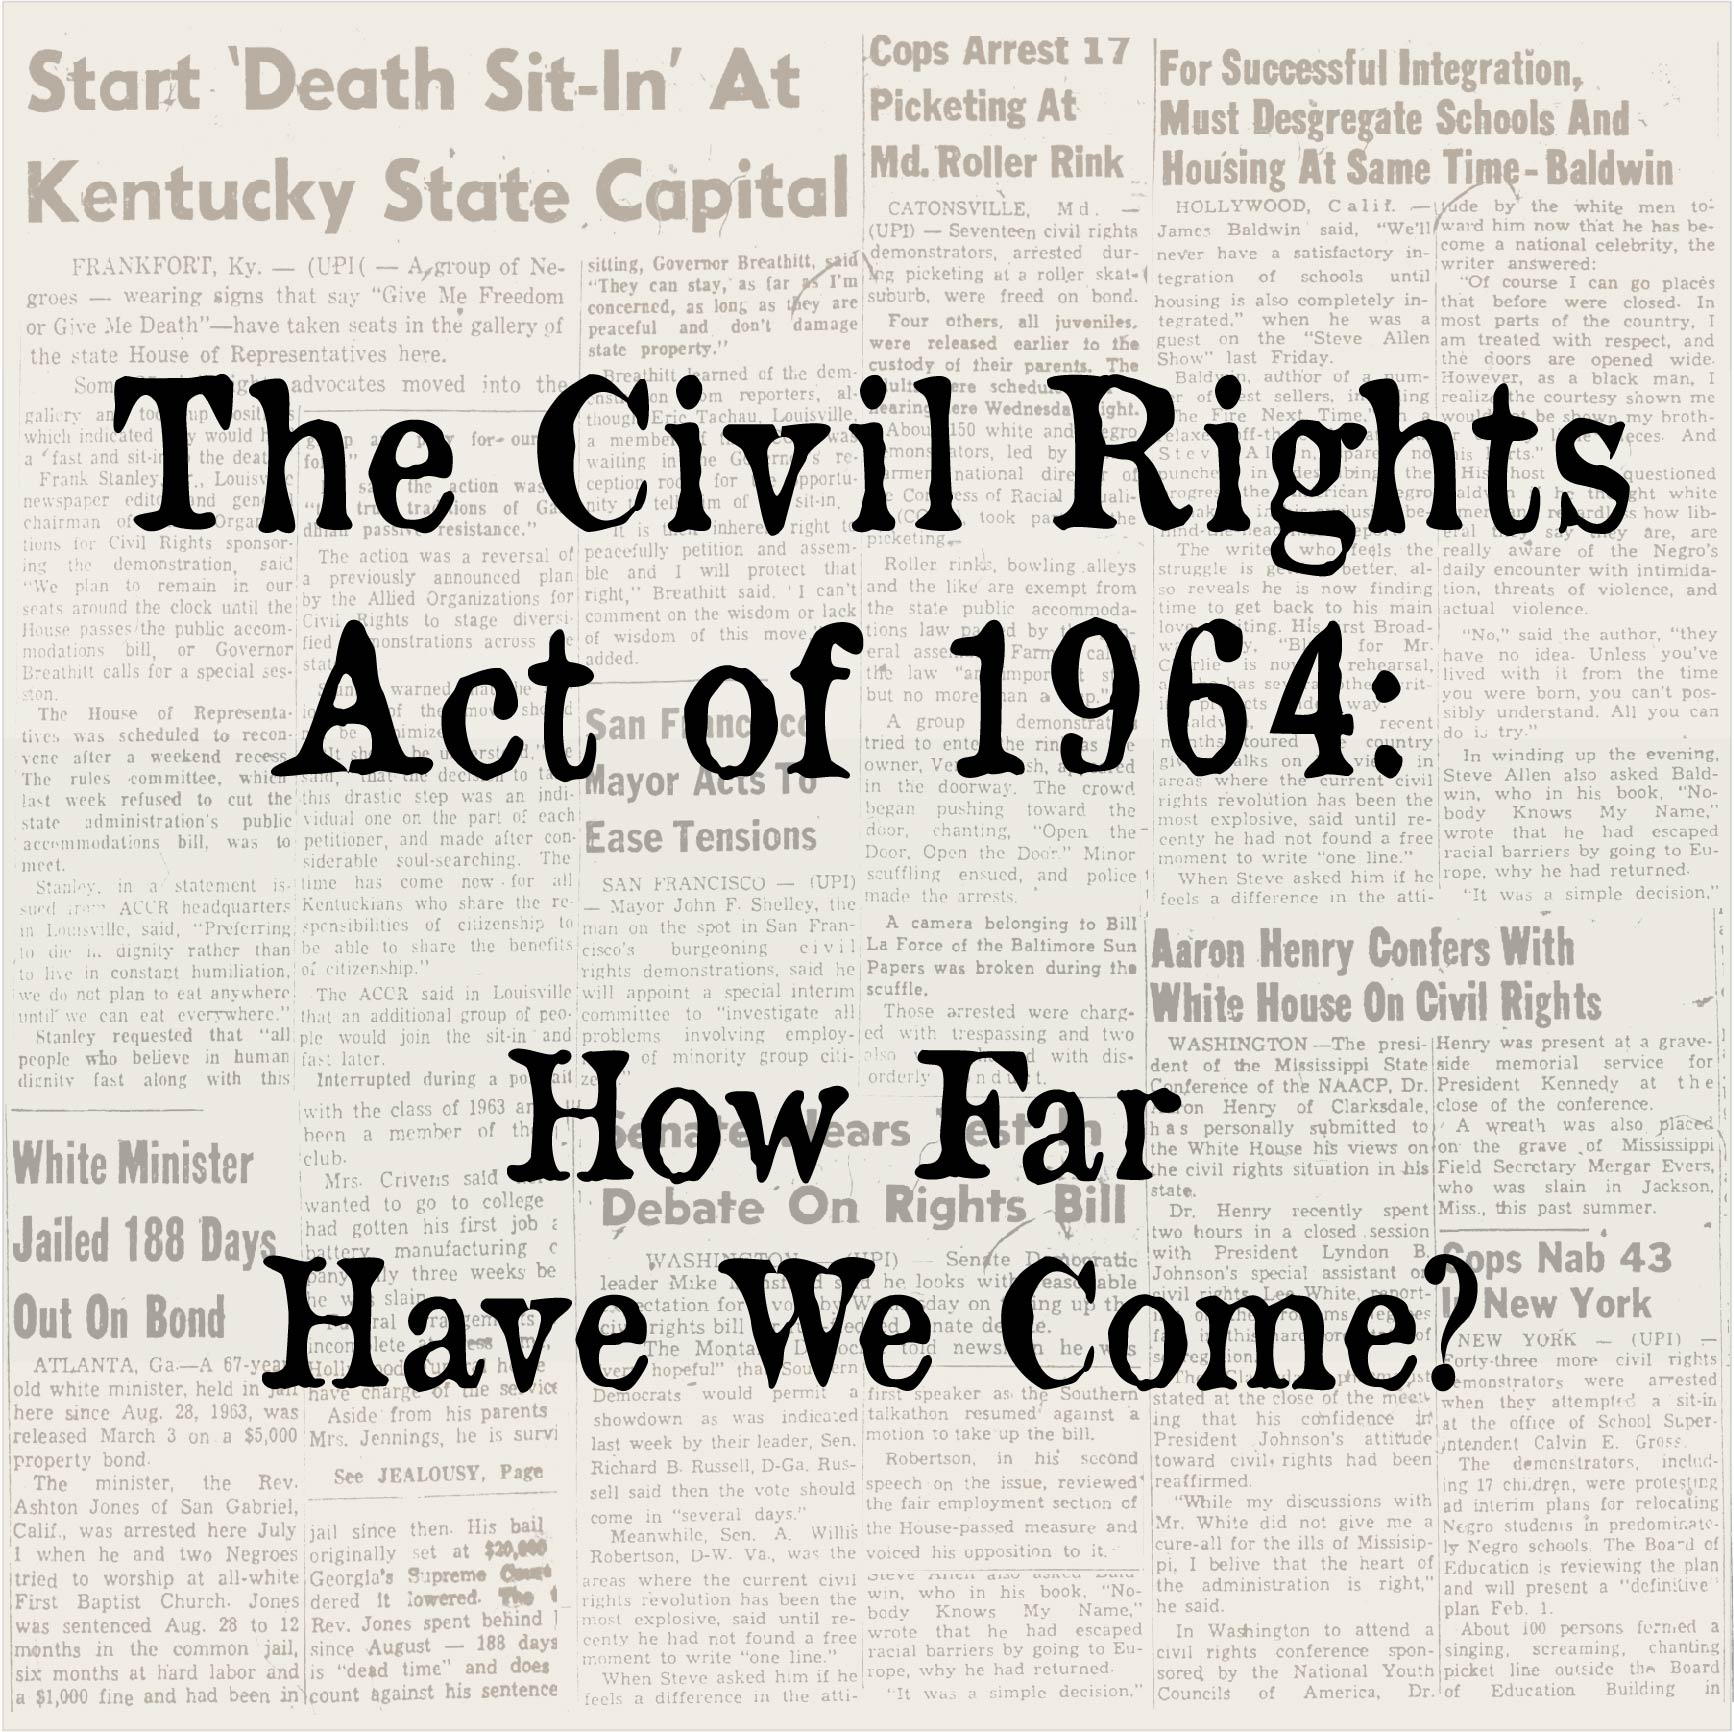 bill of rights civil rights Find out more about the history of voting rights act of 1965, including videos during the civil rights movement of the 1950s and 1960s.